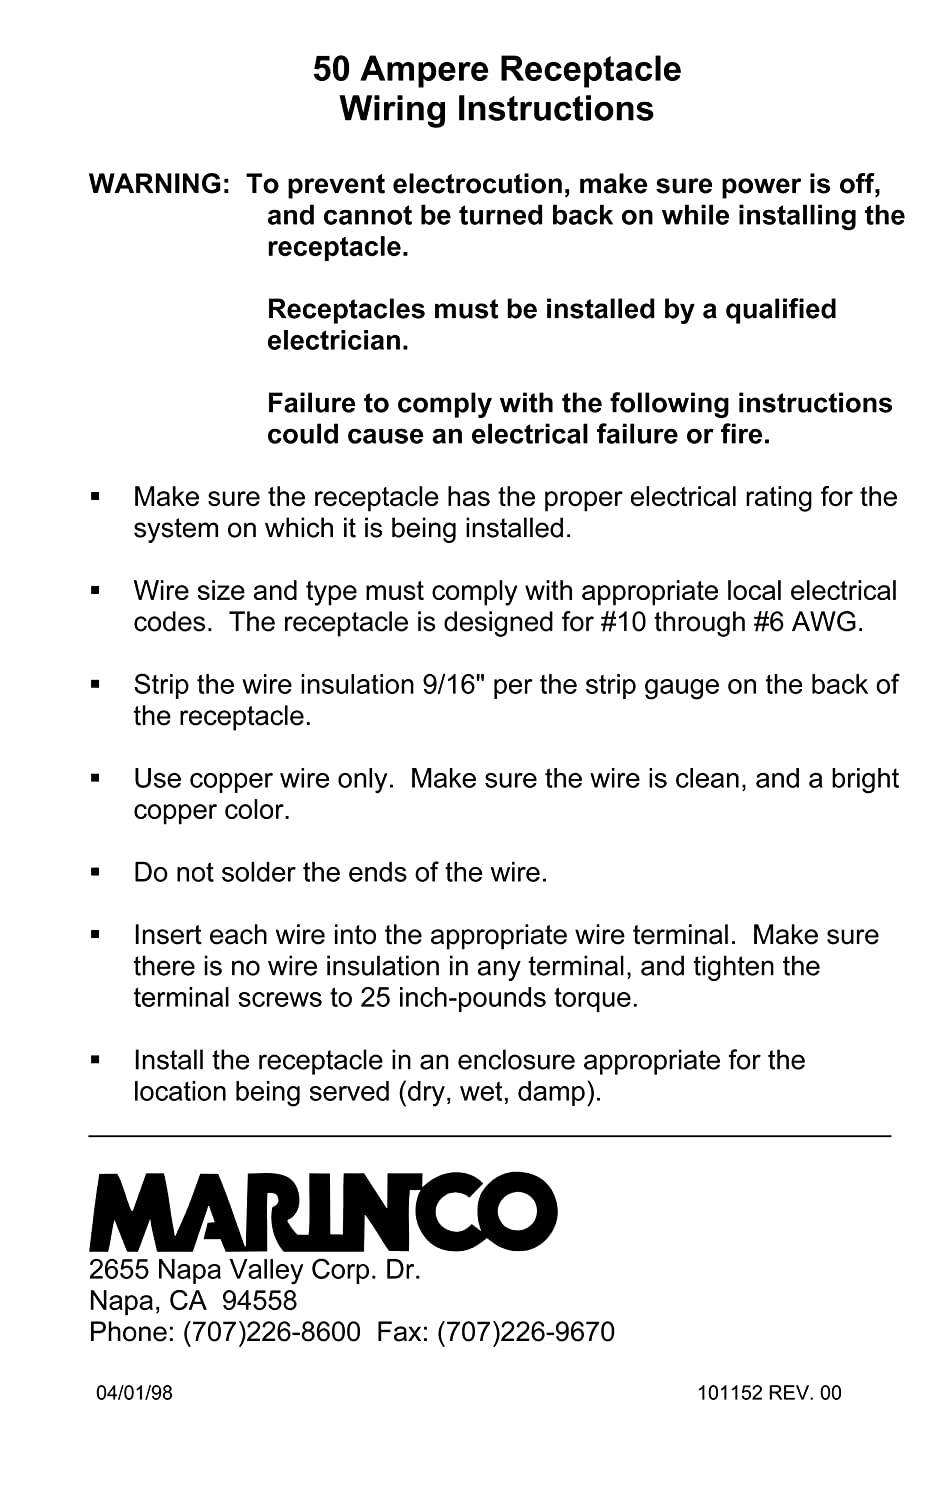 Marinco 6369cr Marine 3 Pole 4 Wire Electrical Dockside Wiring Diagram Switch Panel Receptacle 50 Amp 125 250 Volt Female Black Boating Shore Power Cords Sports